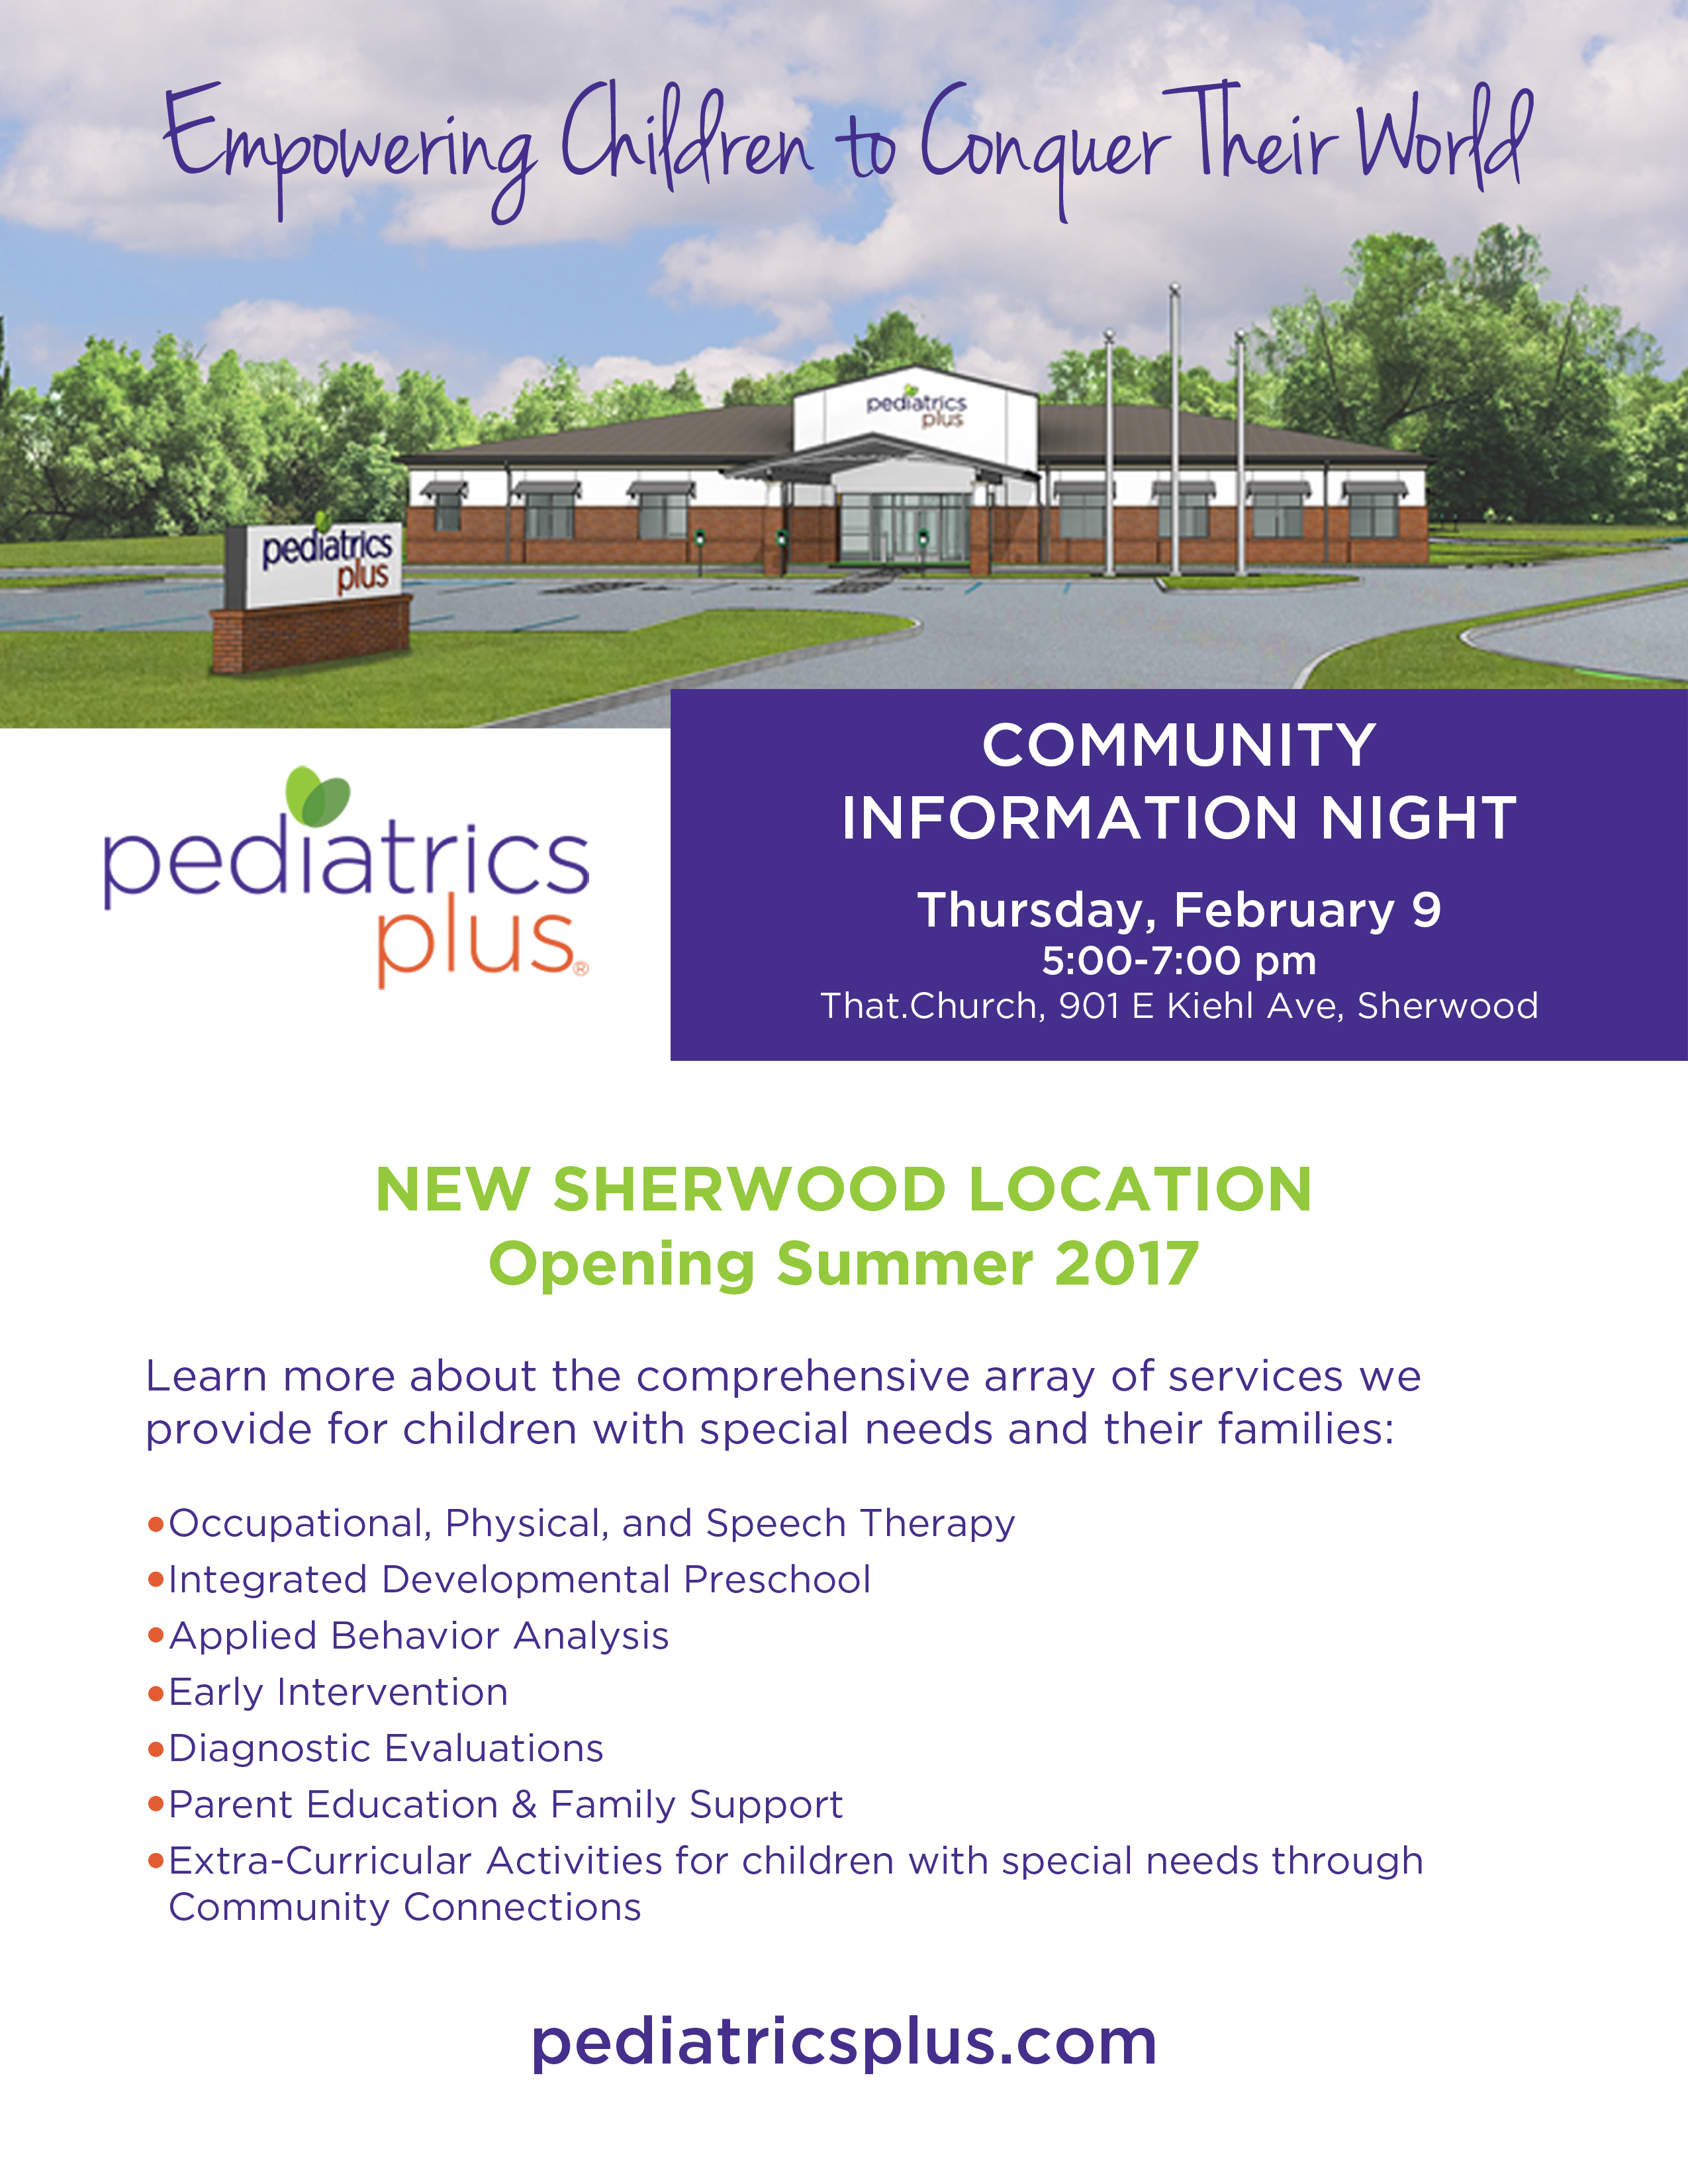 Sherwood Community Information Night - Feb 9